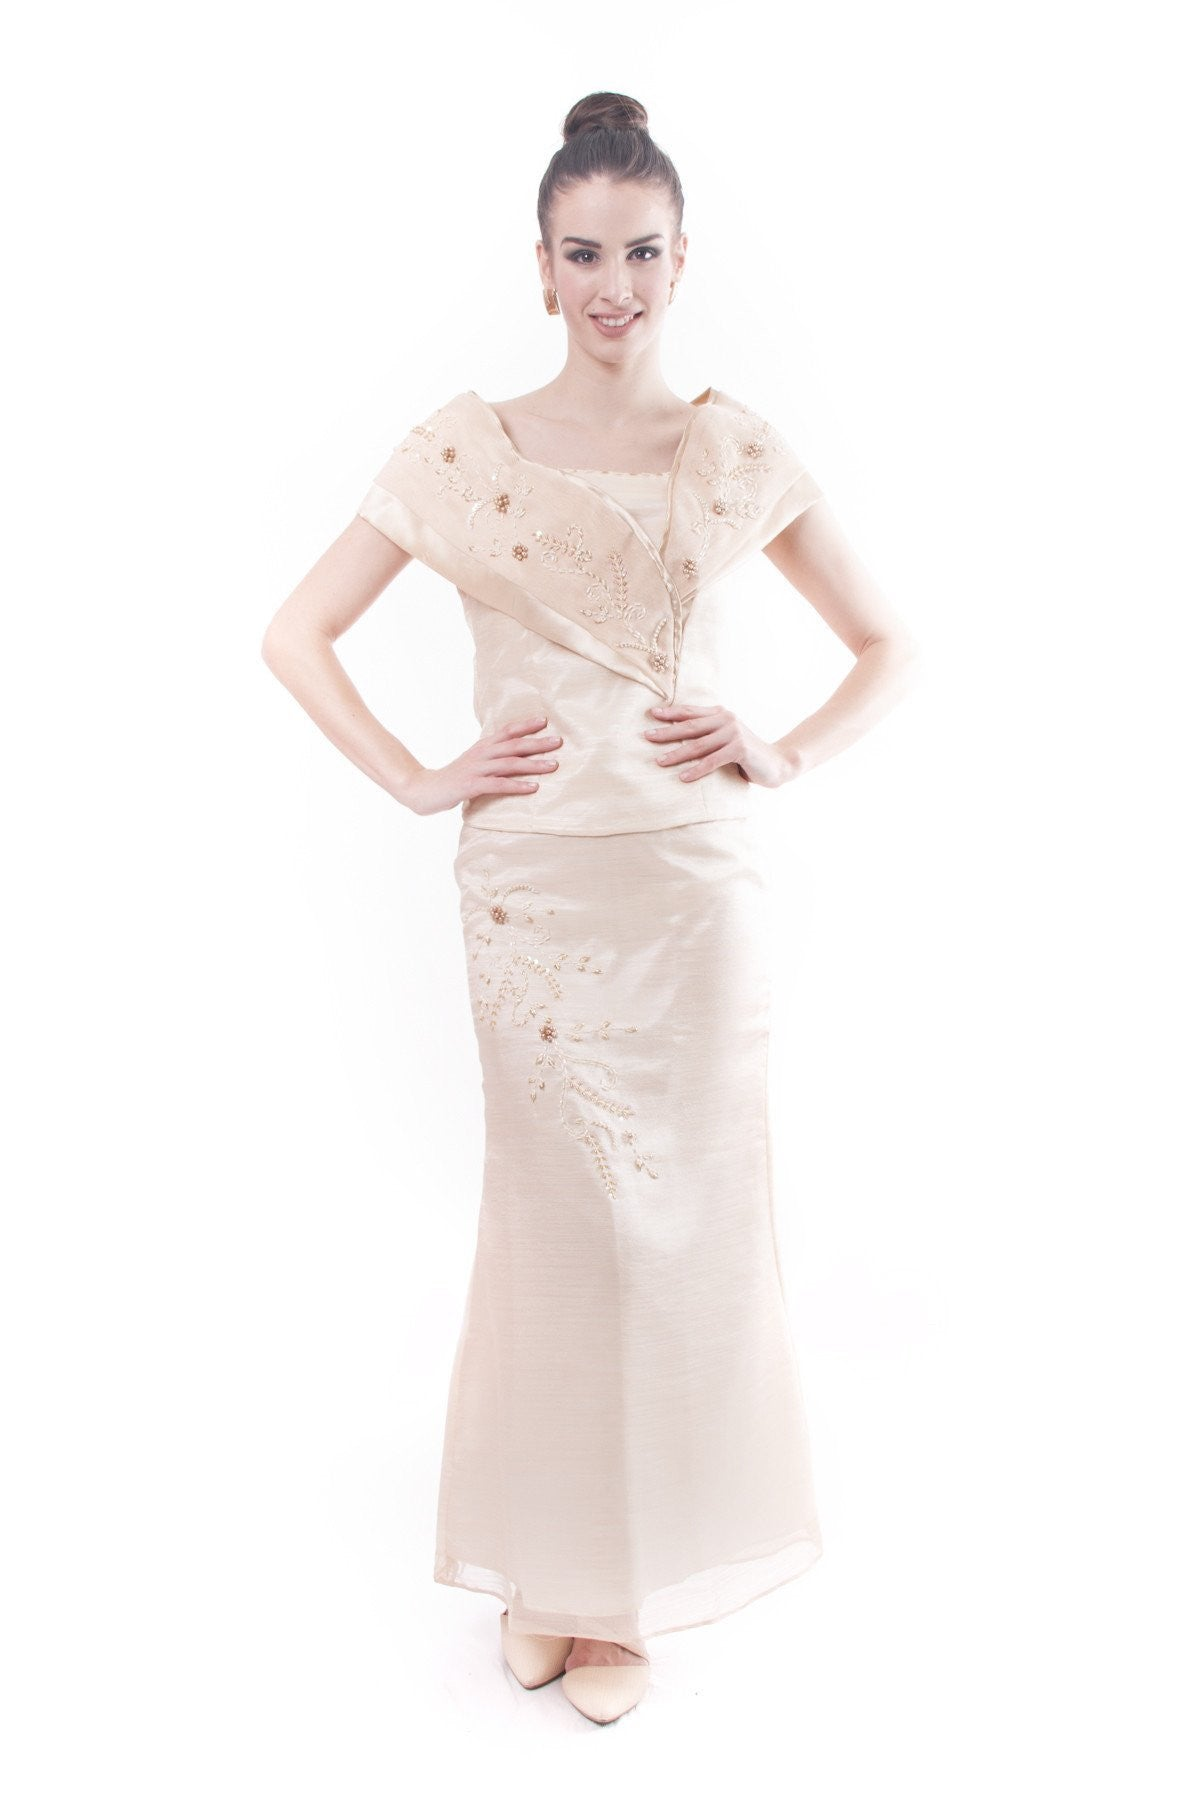 Modern filipiniana dress - Modern filipiniana dress pictures www galleryhip com the hippest